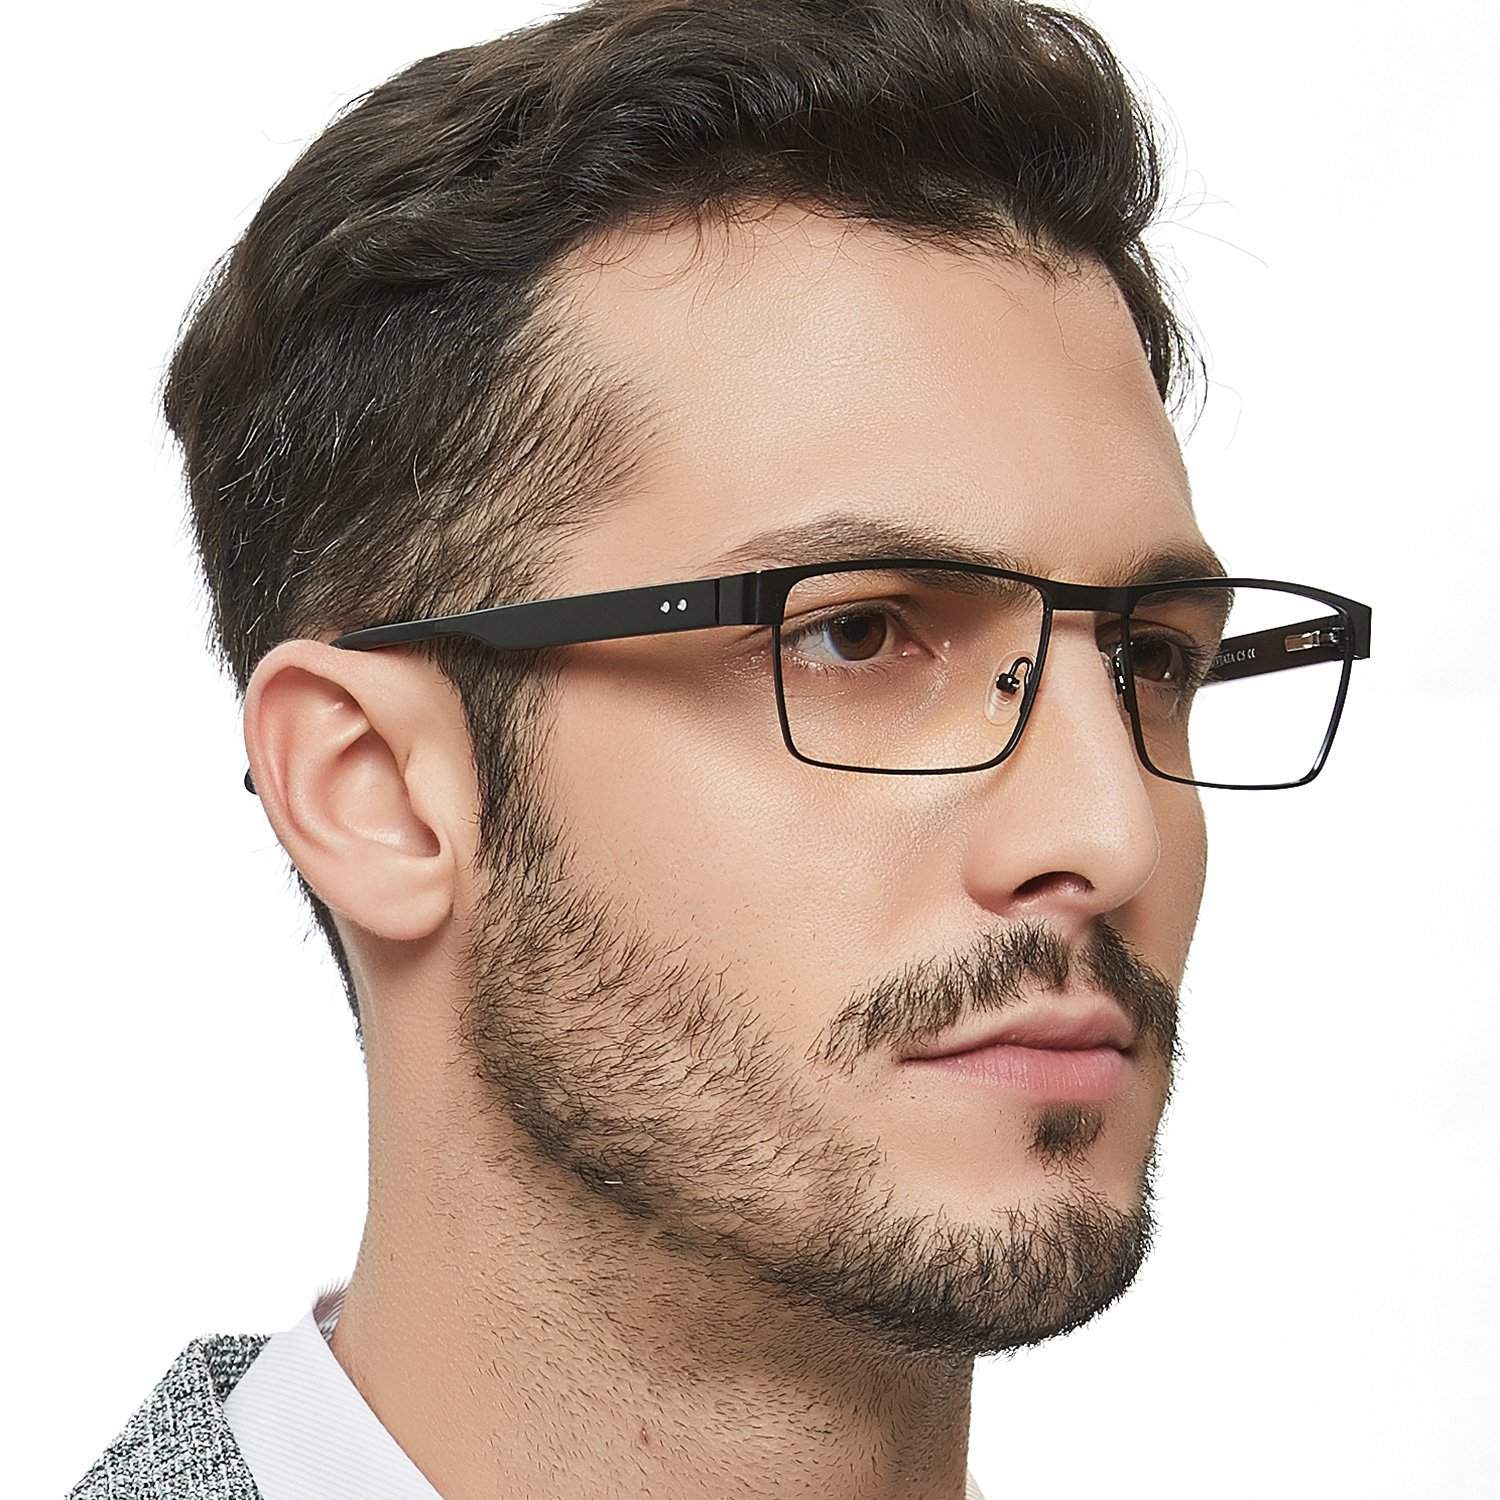 OCCI CHIARI Men Rectange Optical Eyewear Frames with Clear Lenses(Black, 54) by OCCI CHIARI